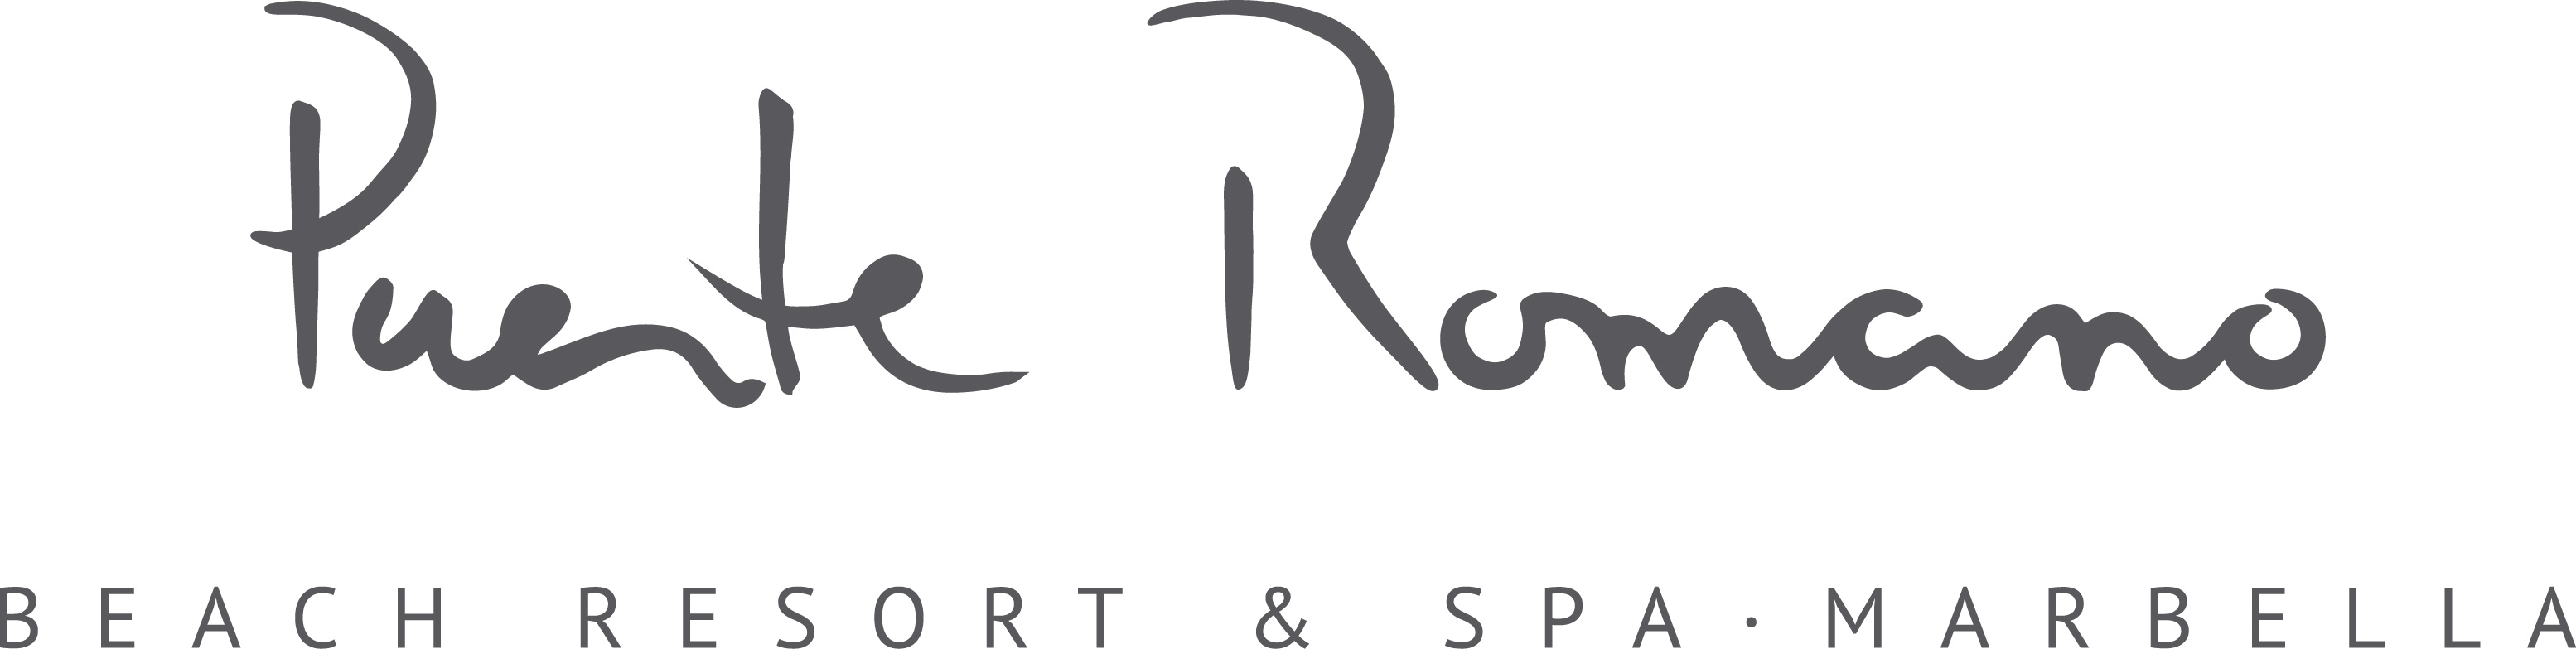 PuenteRomano_BEACH_RESORT&SPA_MRBLLA